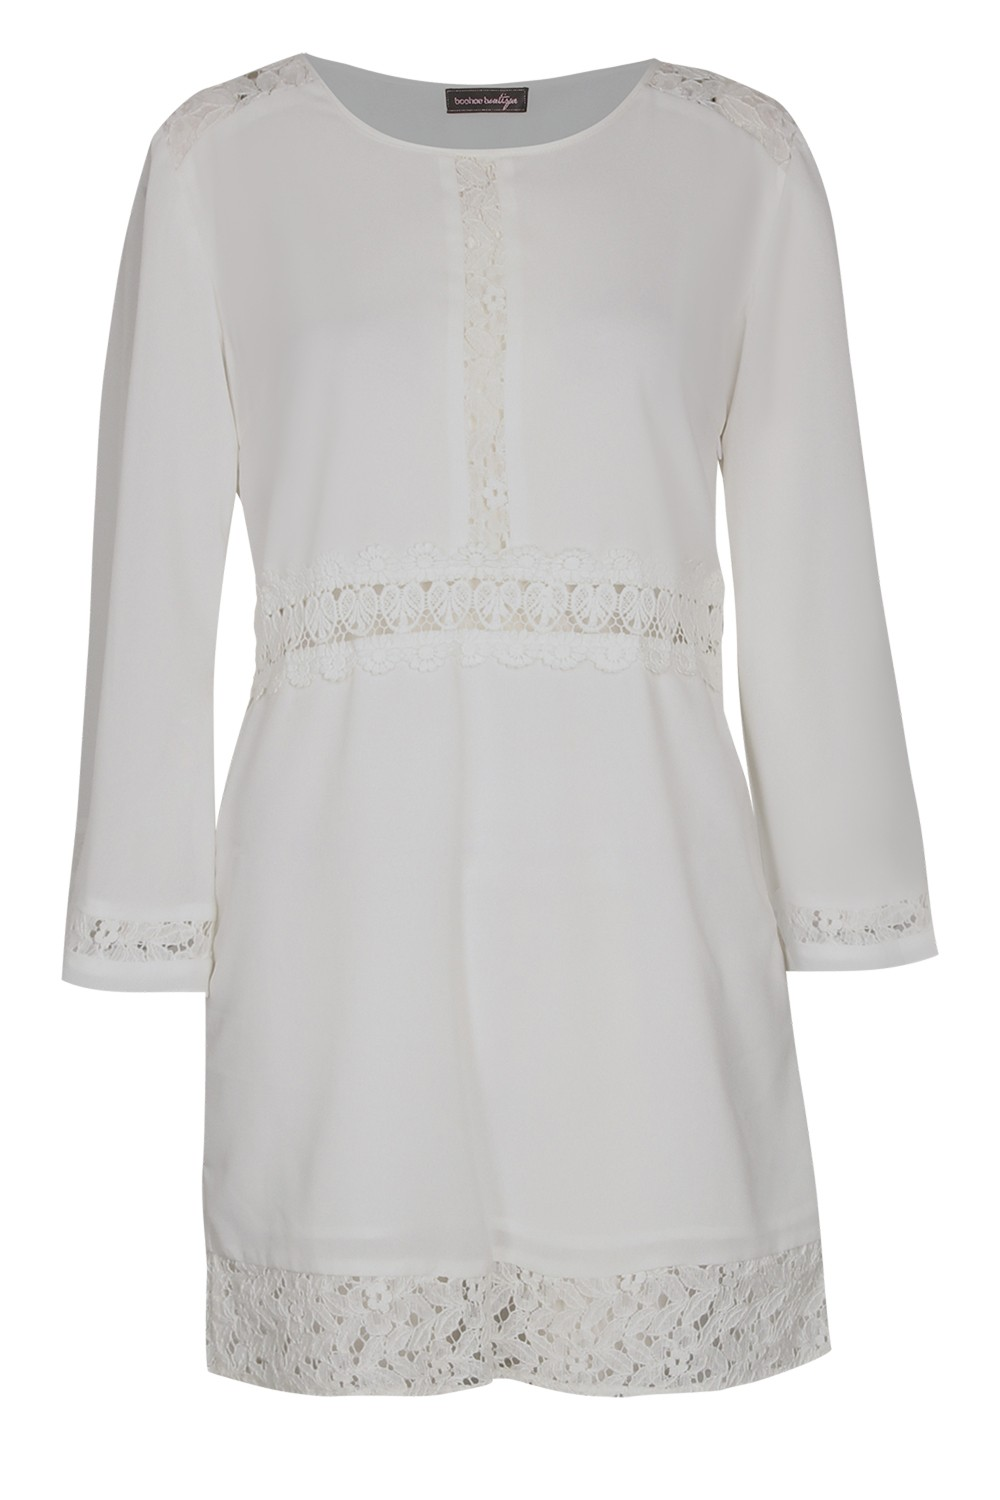 BOOHOO BOUTIQUE Lily Crochet and Lace Shift Dress $65.00